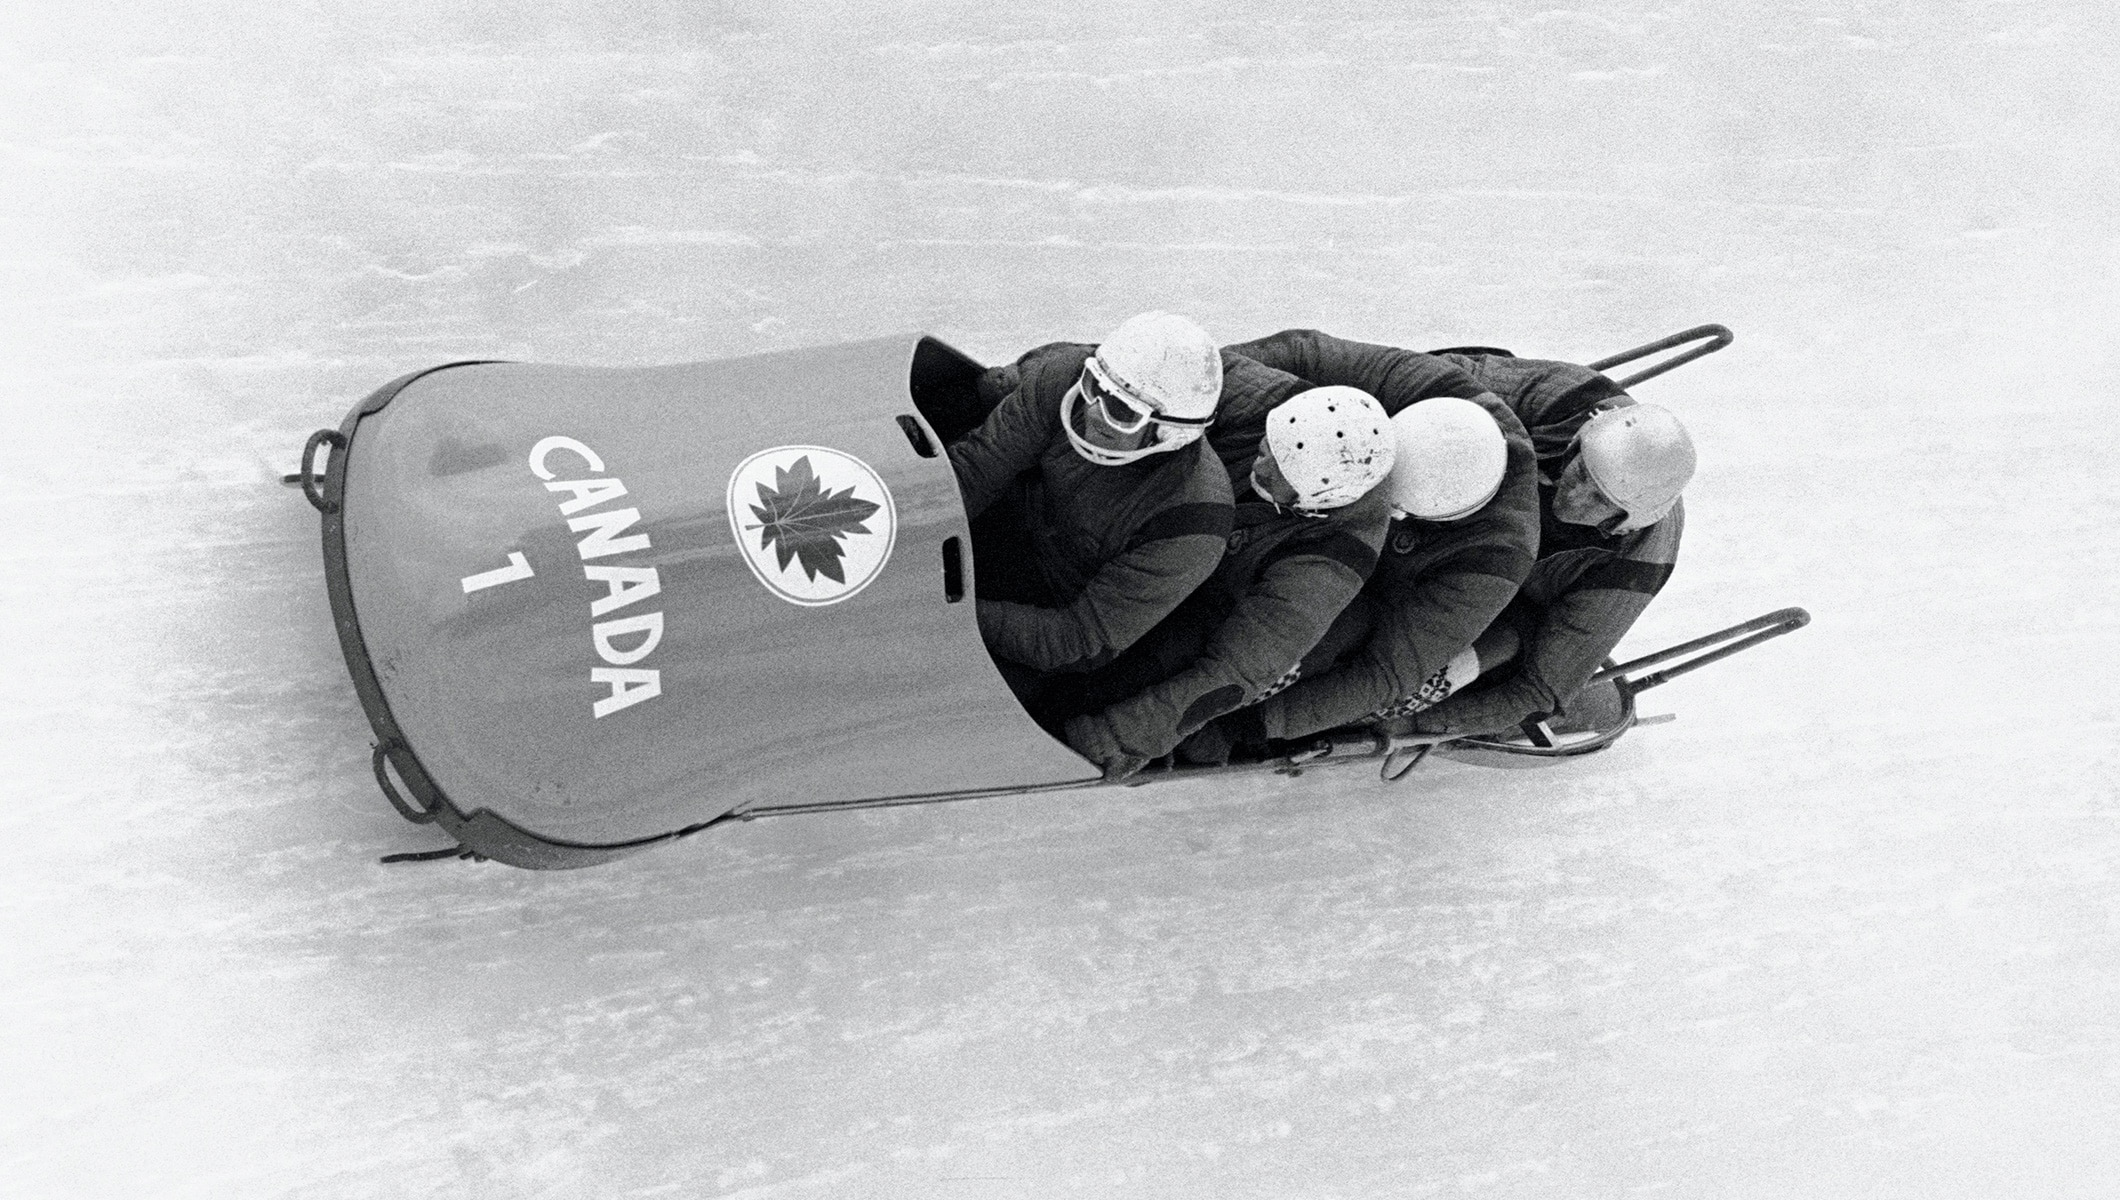 Canada Bobsleigh - Vic Emery